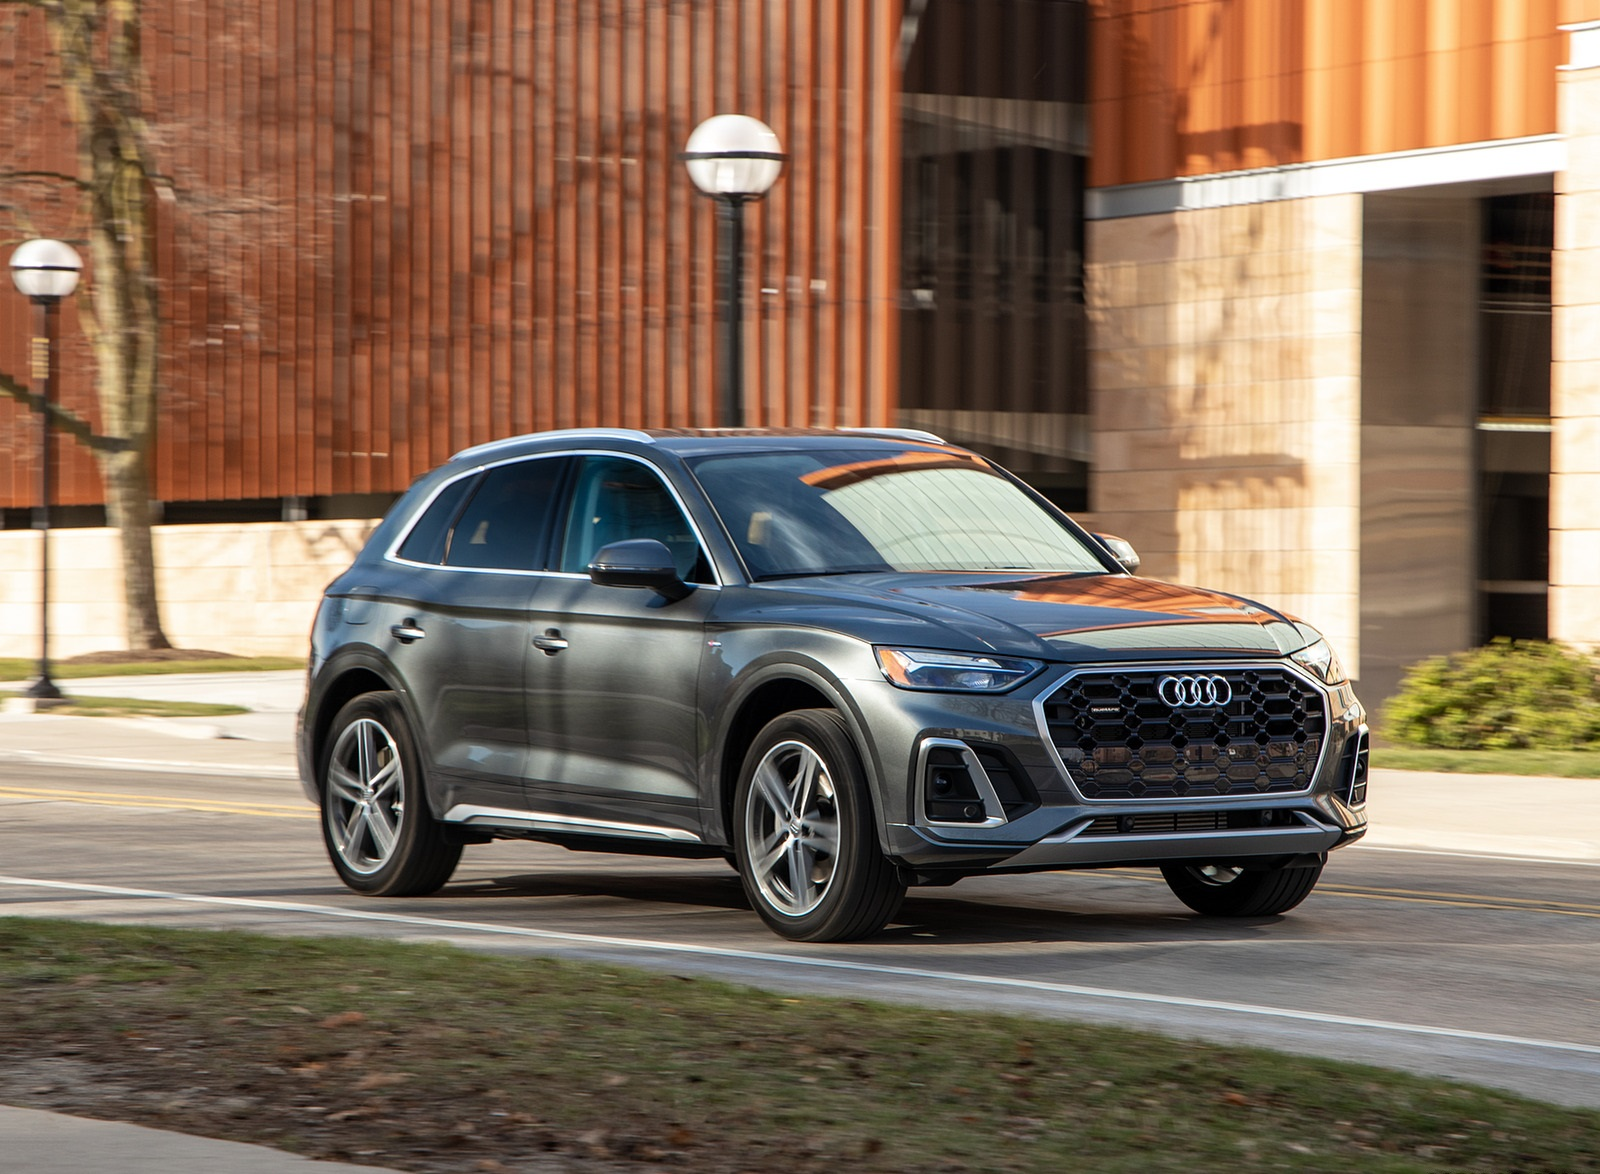 2021 Audi Q5 55 TFSI e quattro PHEV (US-Spec) Front Three-Quarter Wallpapers (8)